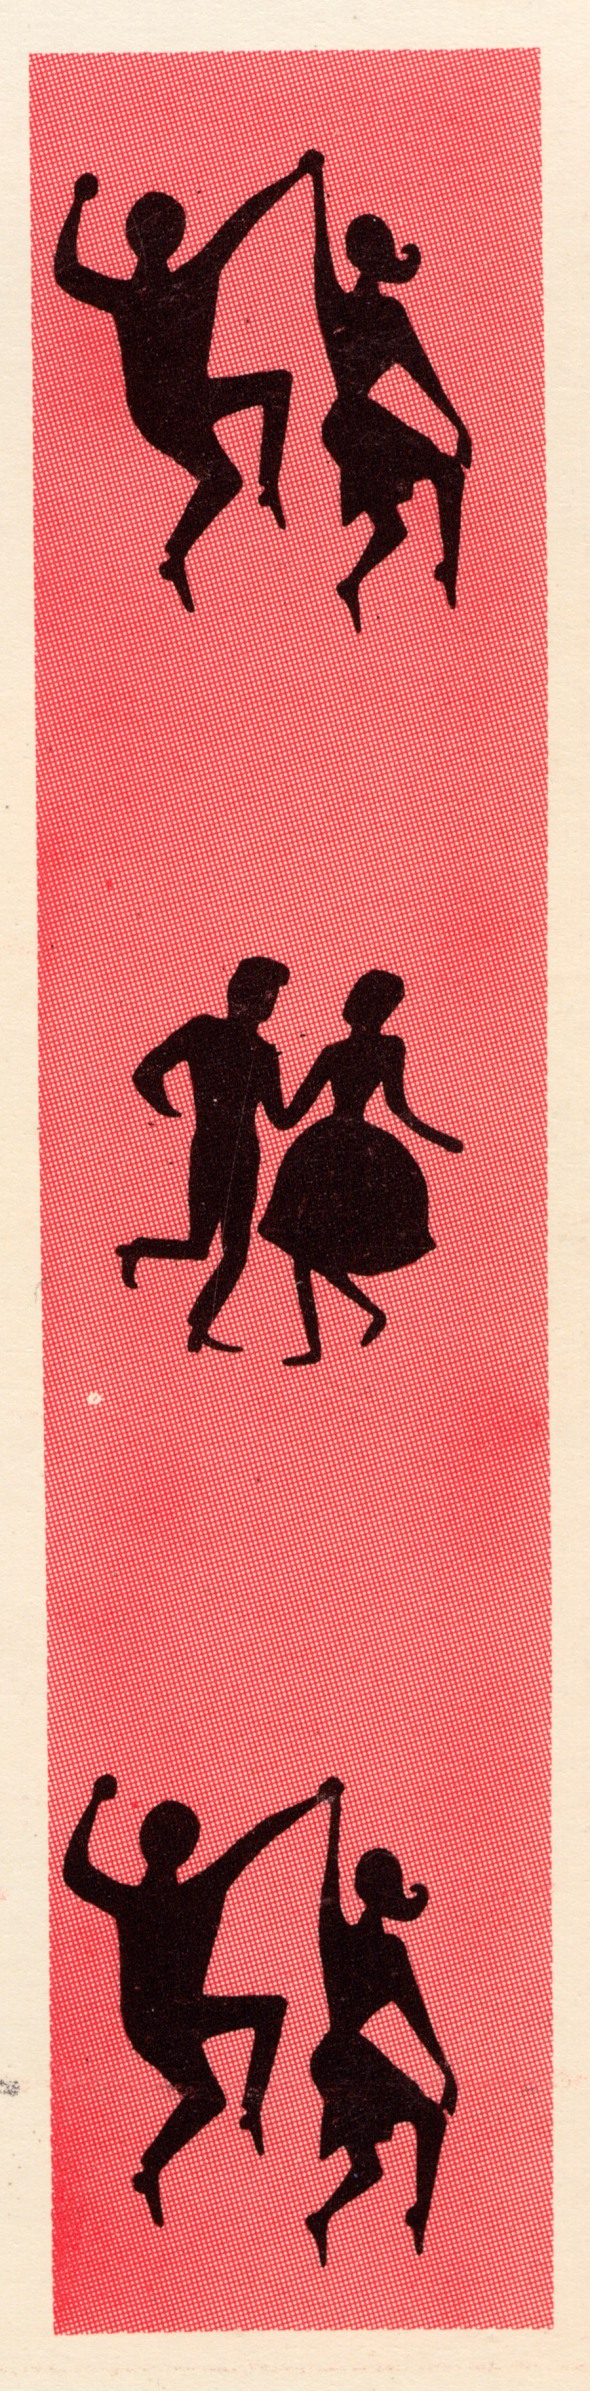 dancing-couple